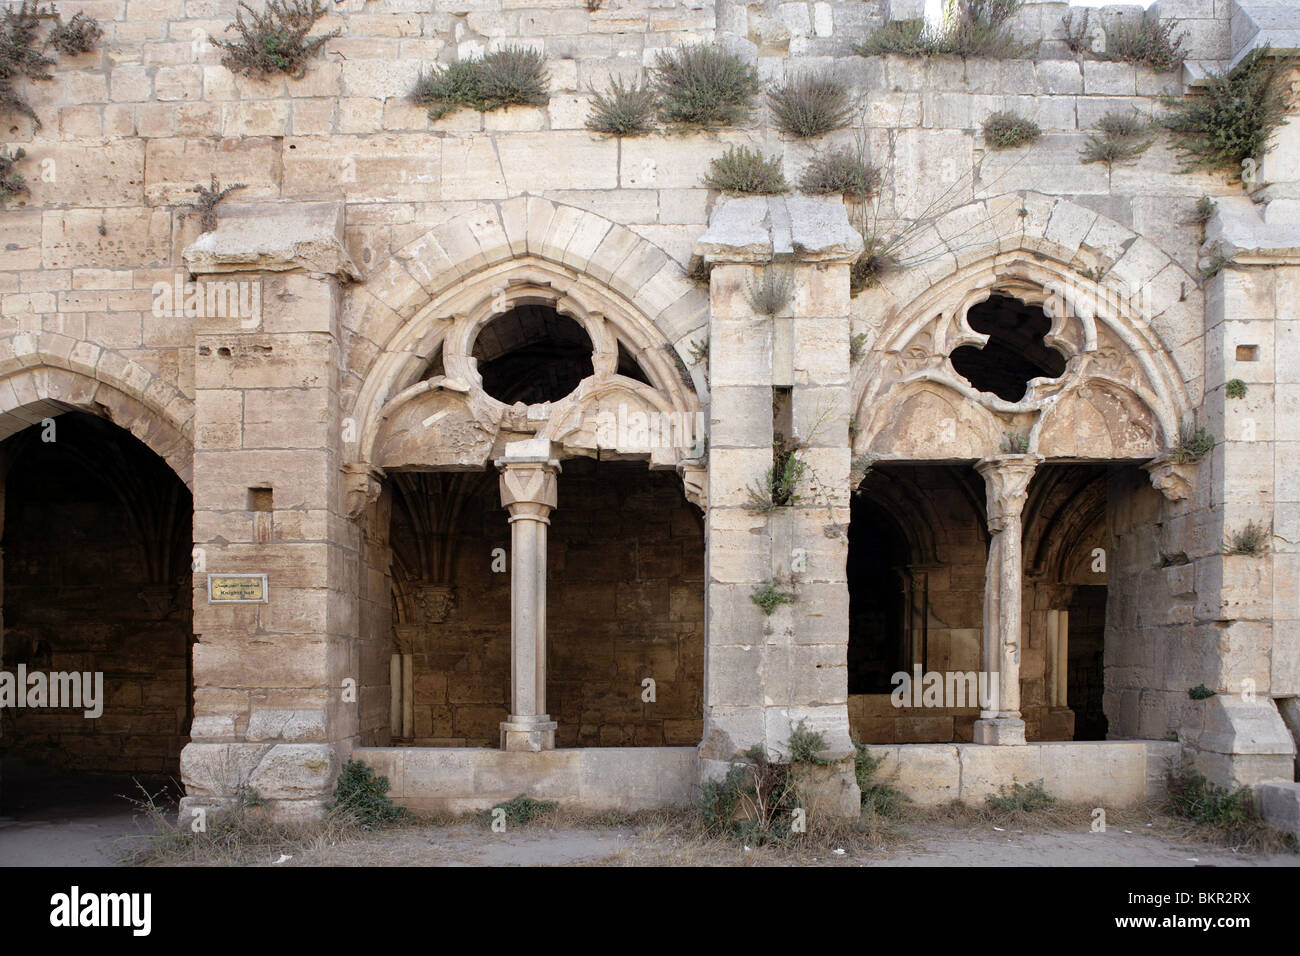 Arches of the Gothic cloister and Chevaliers' Room, 13th century, Krak des Chevaliers, Qala'at al-Husn, - Stock Image